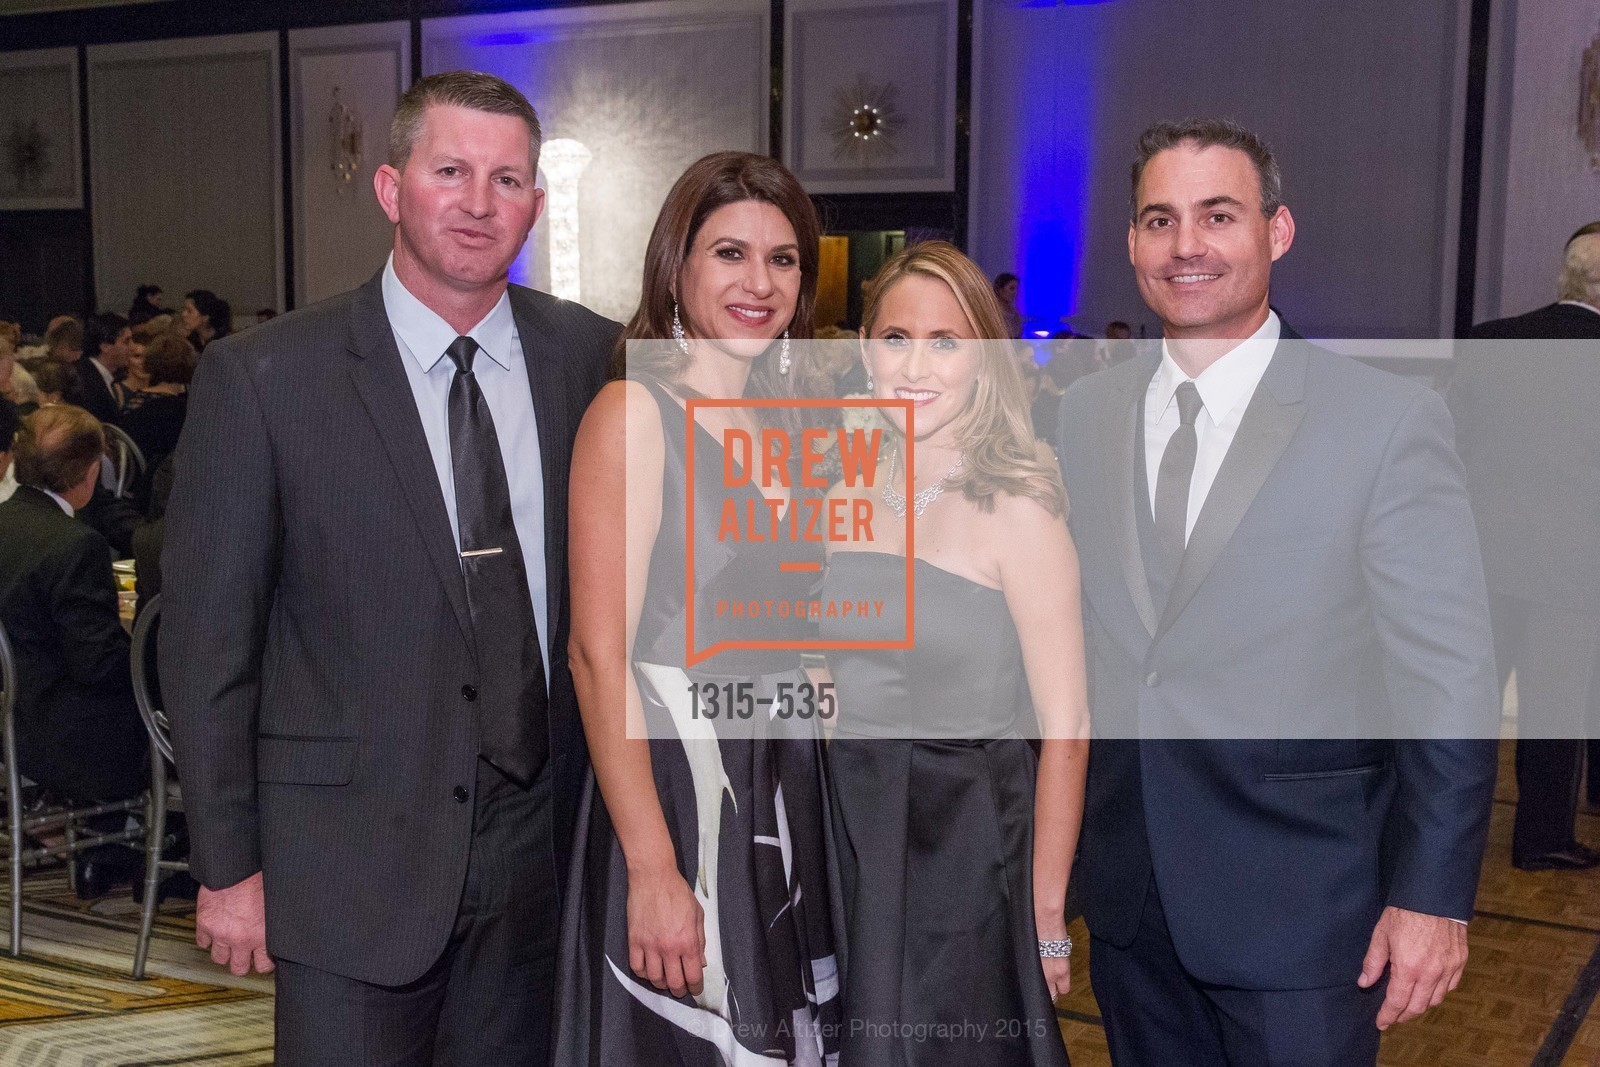 John Moutsanas, Georgia Tsigaris, Vanessa Mockler, Patrick Mockler, Hellenic Charity Ball, Westin St. Francis. 335 Powell Street, November 14th, 2015,Drew Altizer, Drew Altizer Photography, full-service agency, private events, San Francisco photographer, photographer california